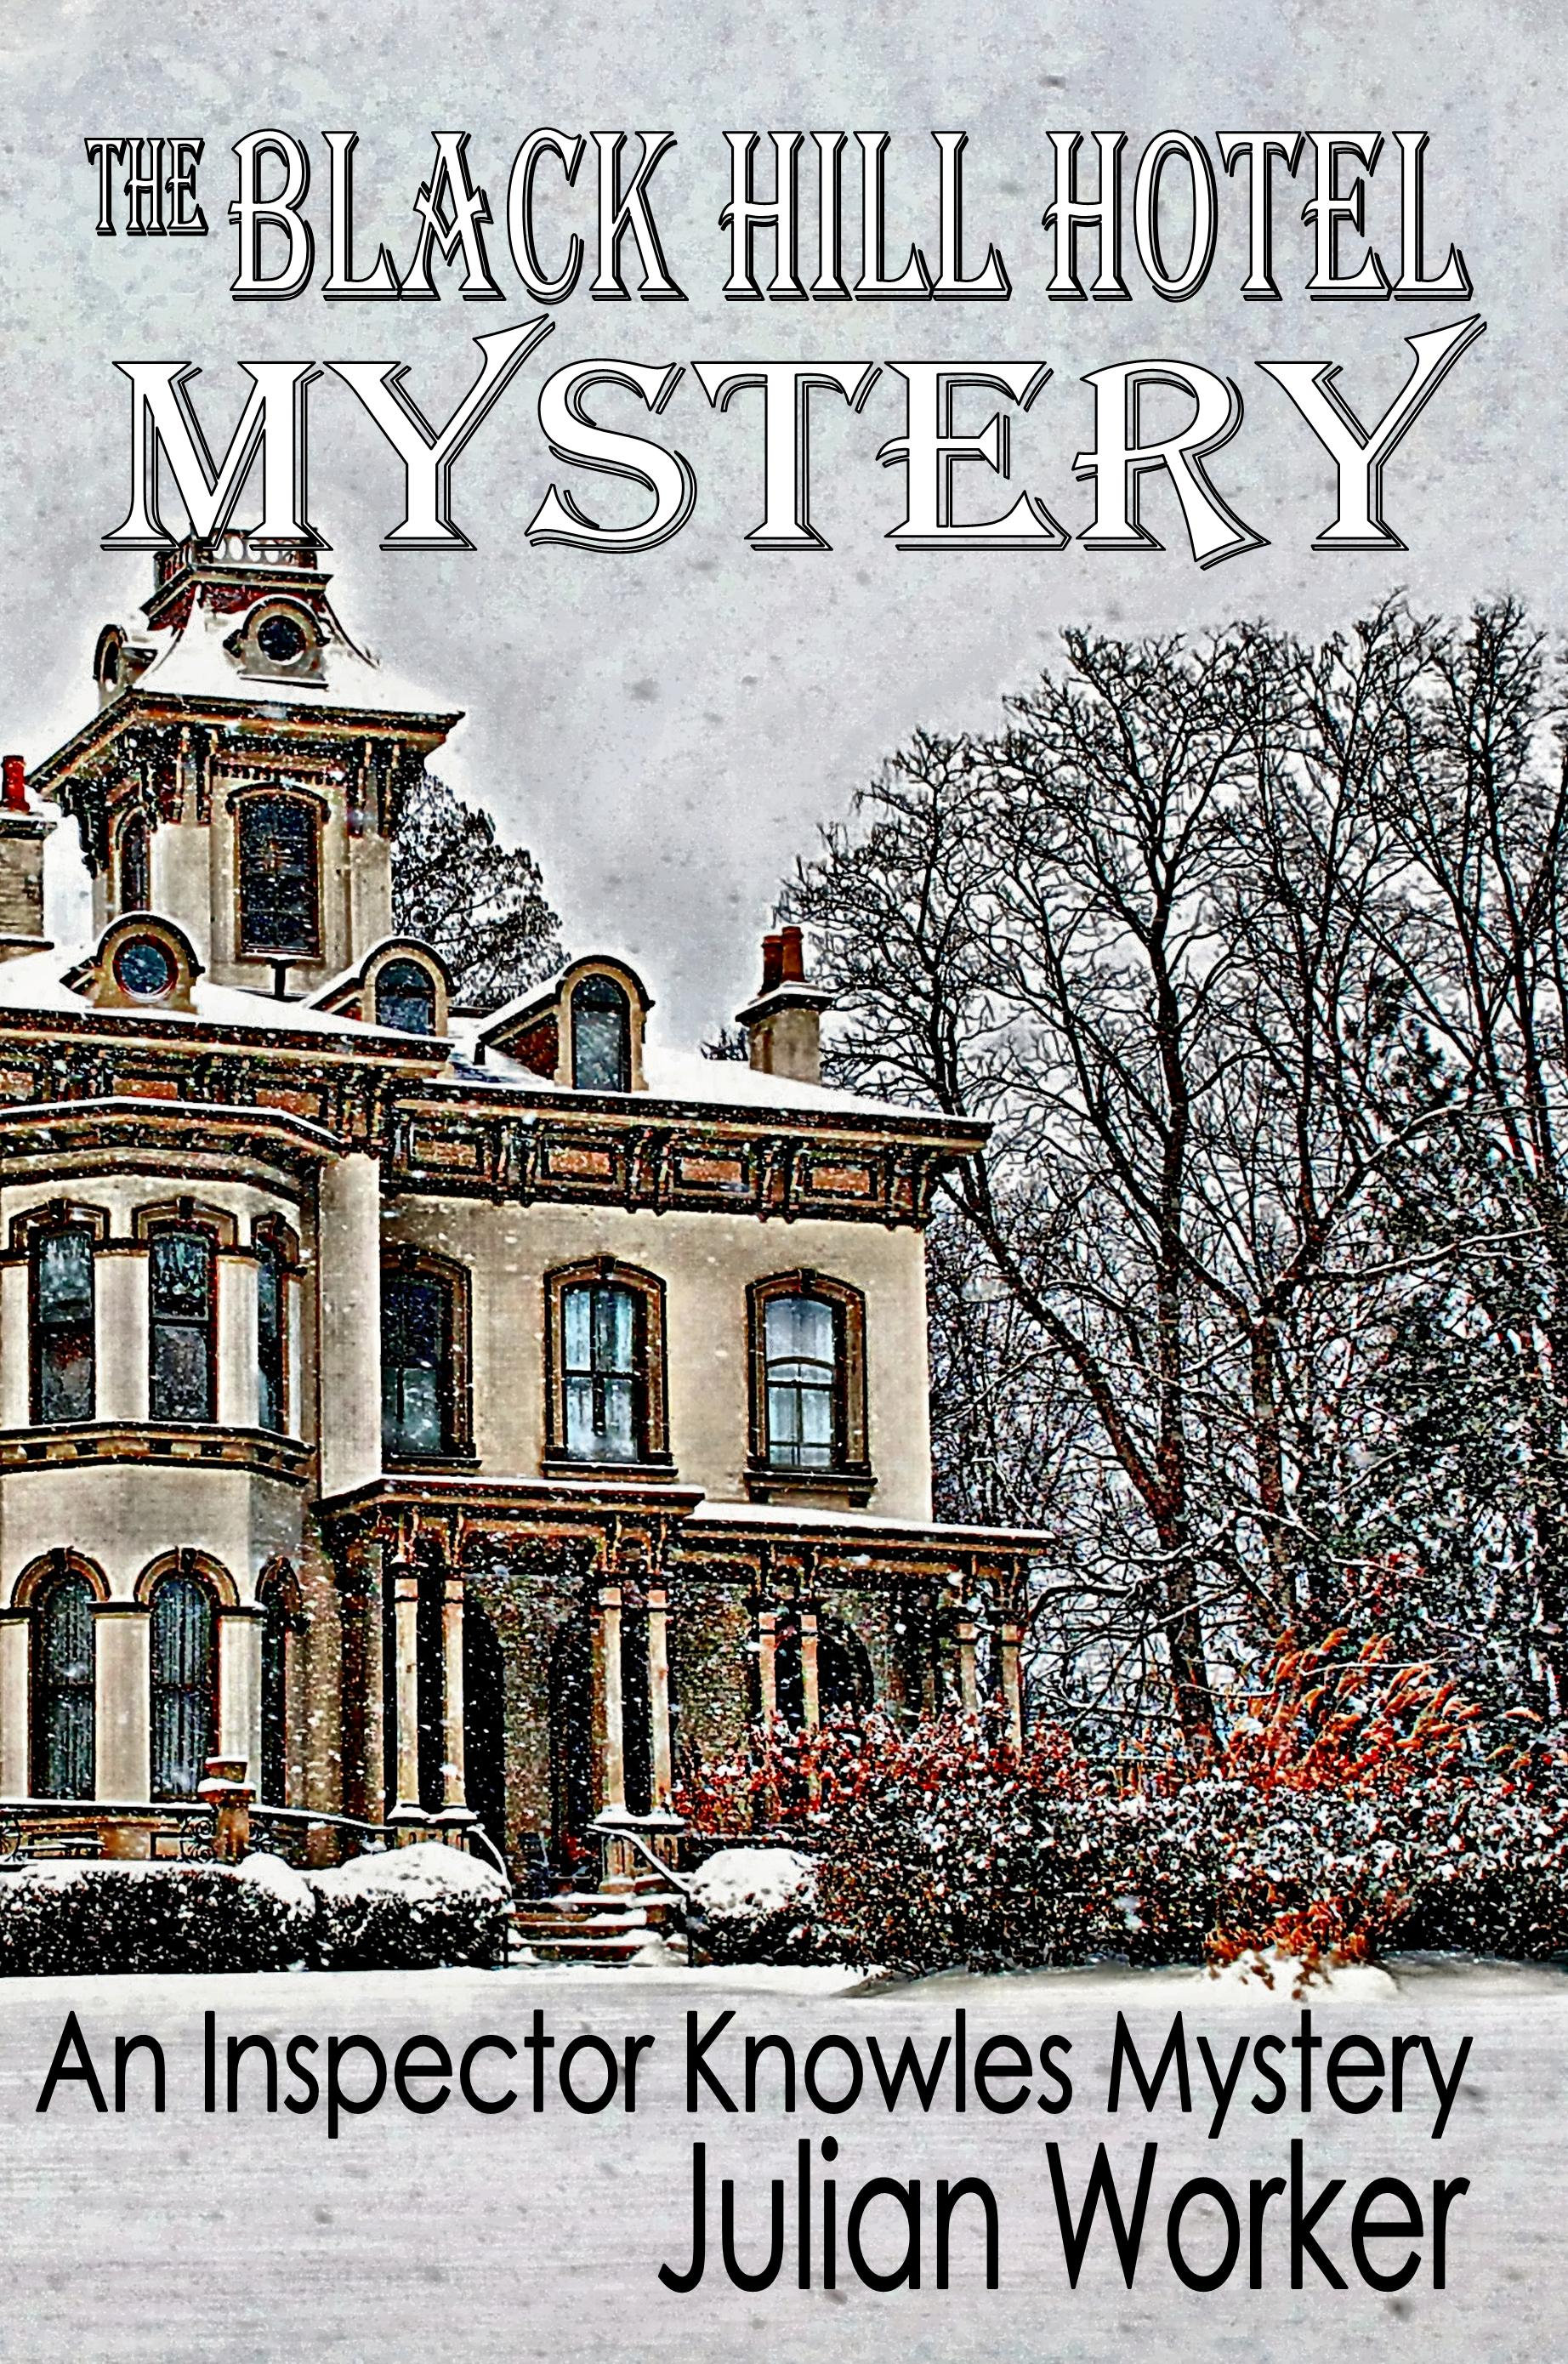 The Black Hill Hotel Mystery – 34